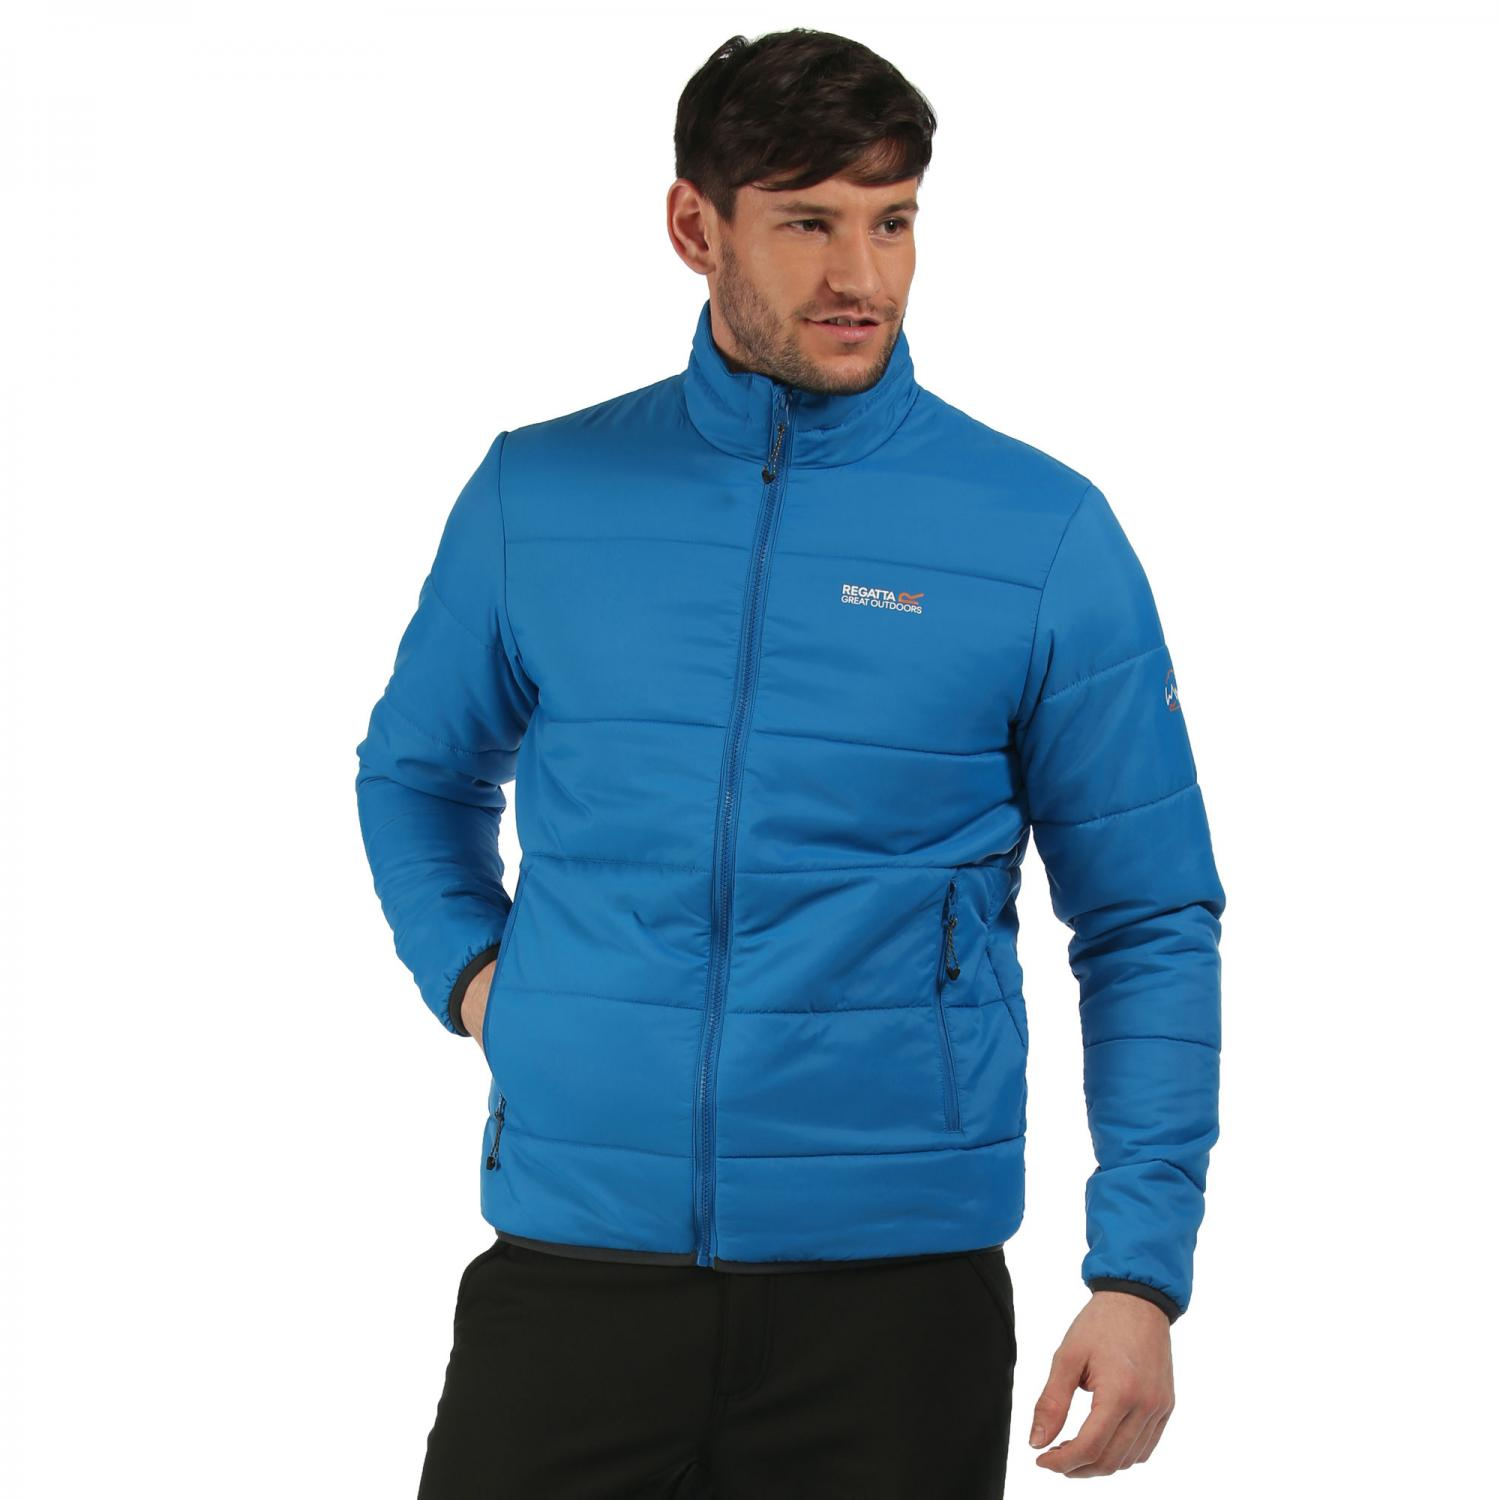 Zyber Jacket Imperial Blue